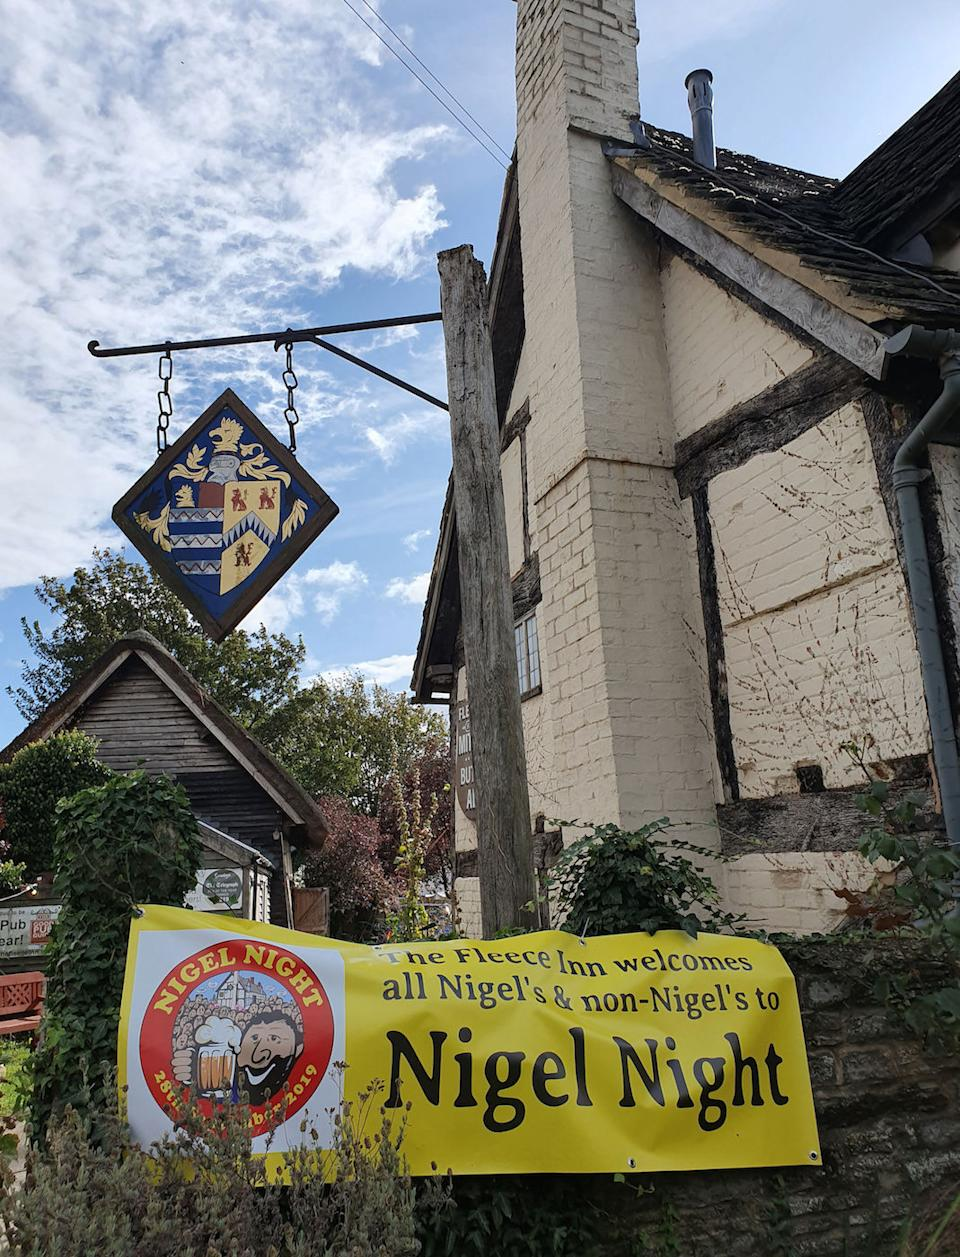 The Fleece Inn in Worcestershire hosted the Nigel-themed event (Picture: PA)